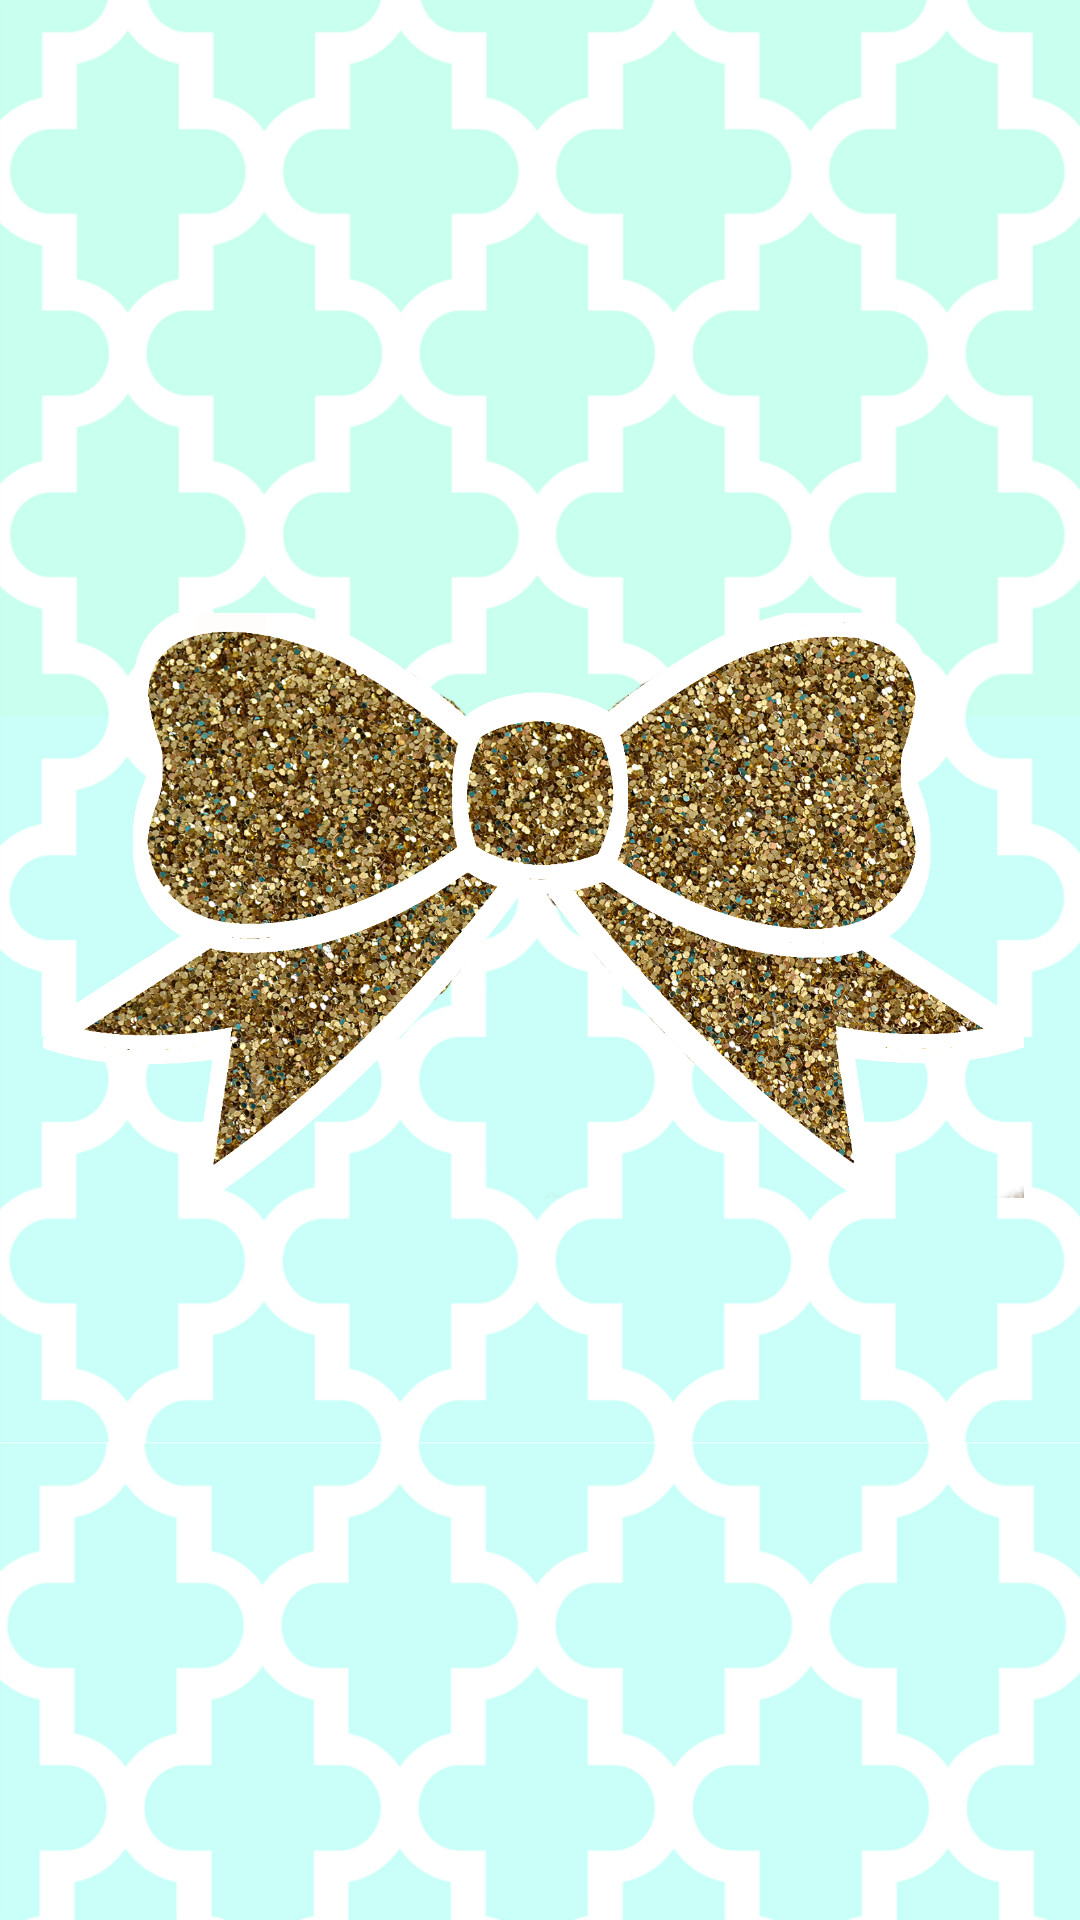 1080x1920 Tiffany blue + gold glitter bow tech wallpaper #FREE